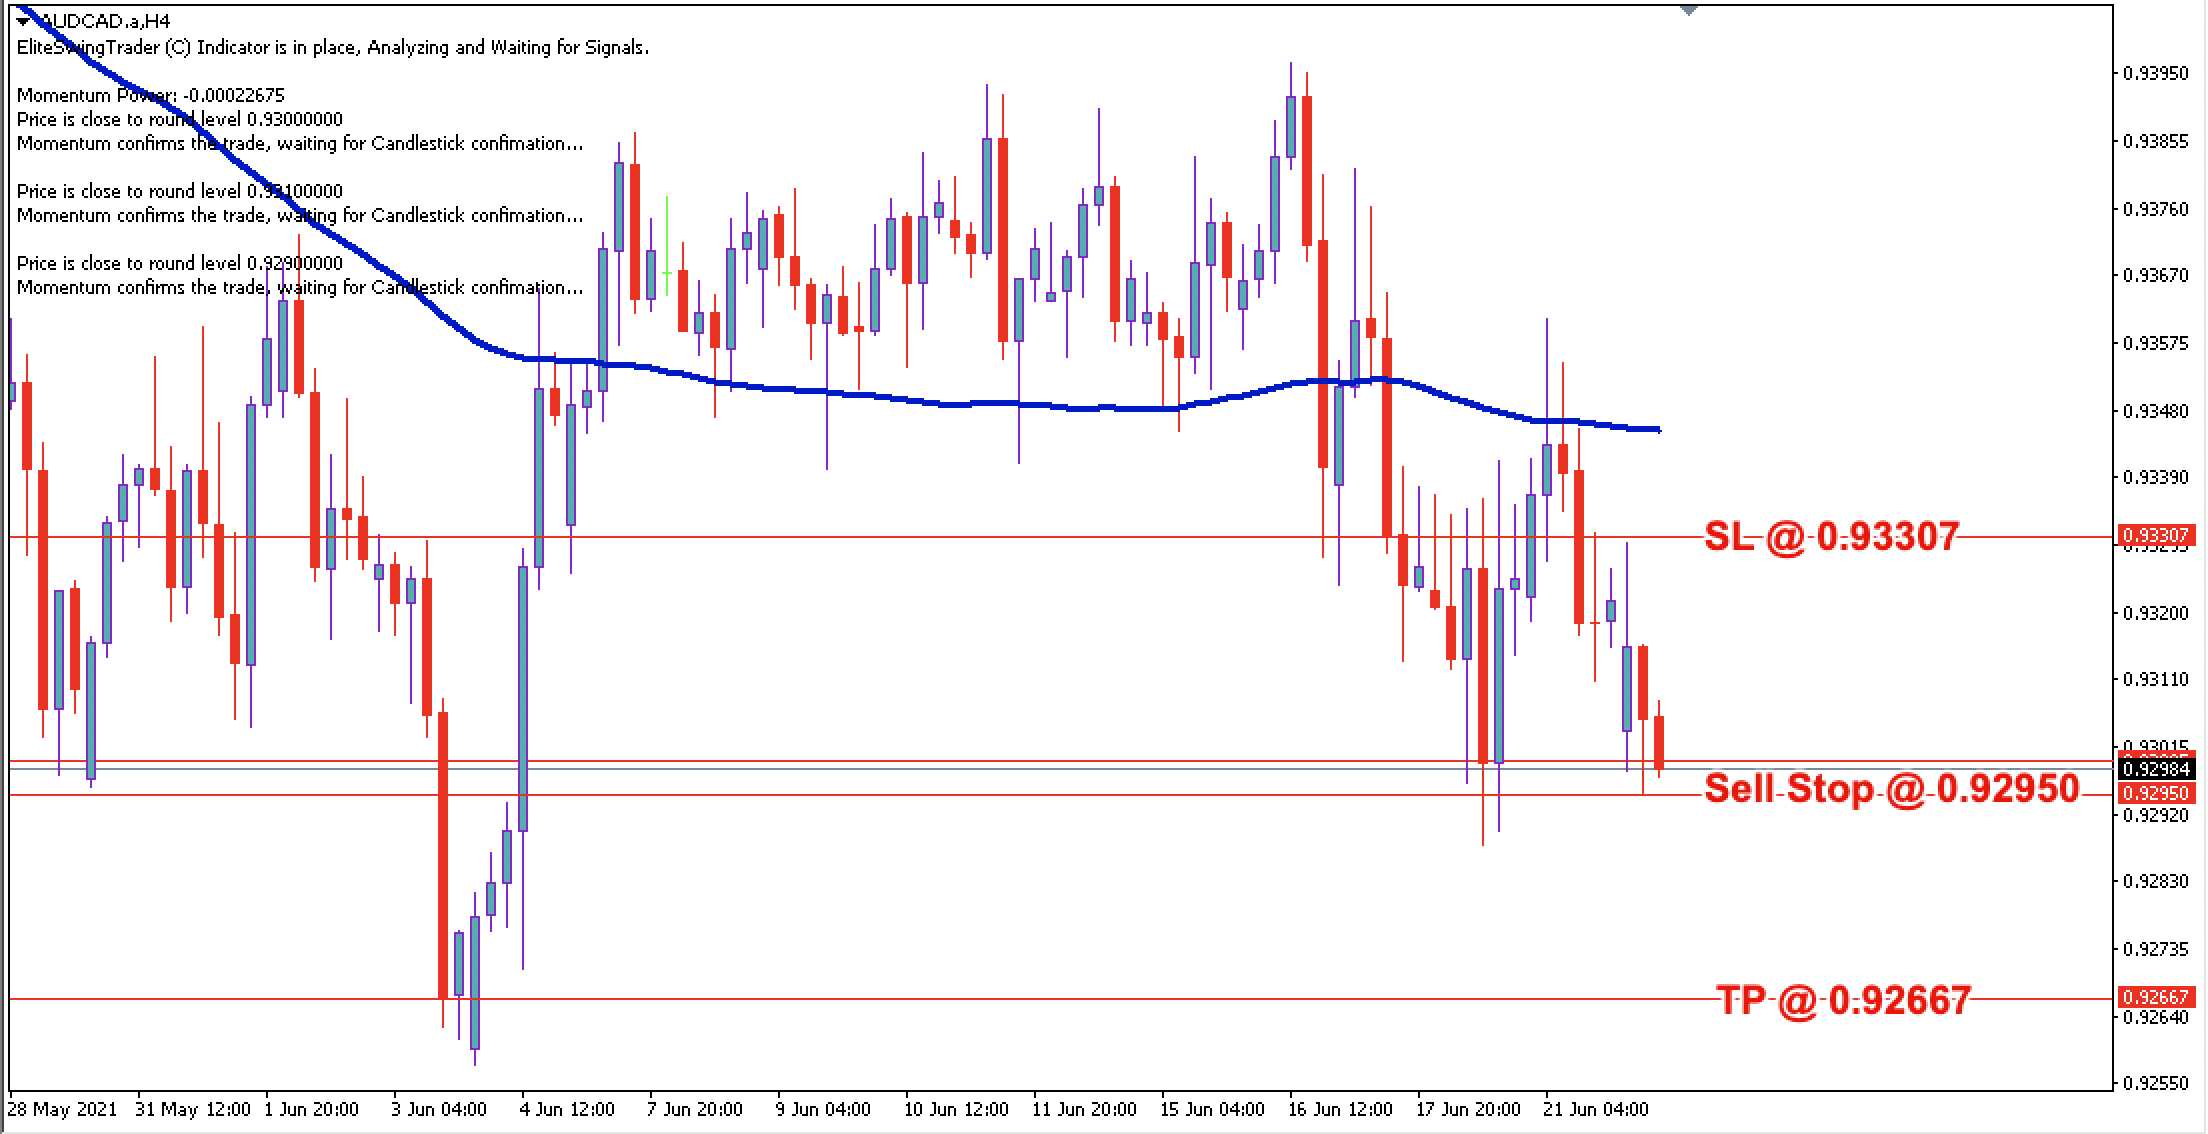 AUD/CAD Daily Price Forecast – 22nd June 2021